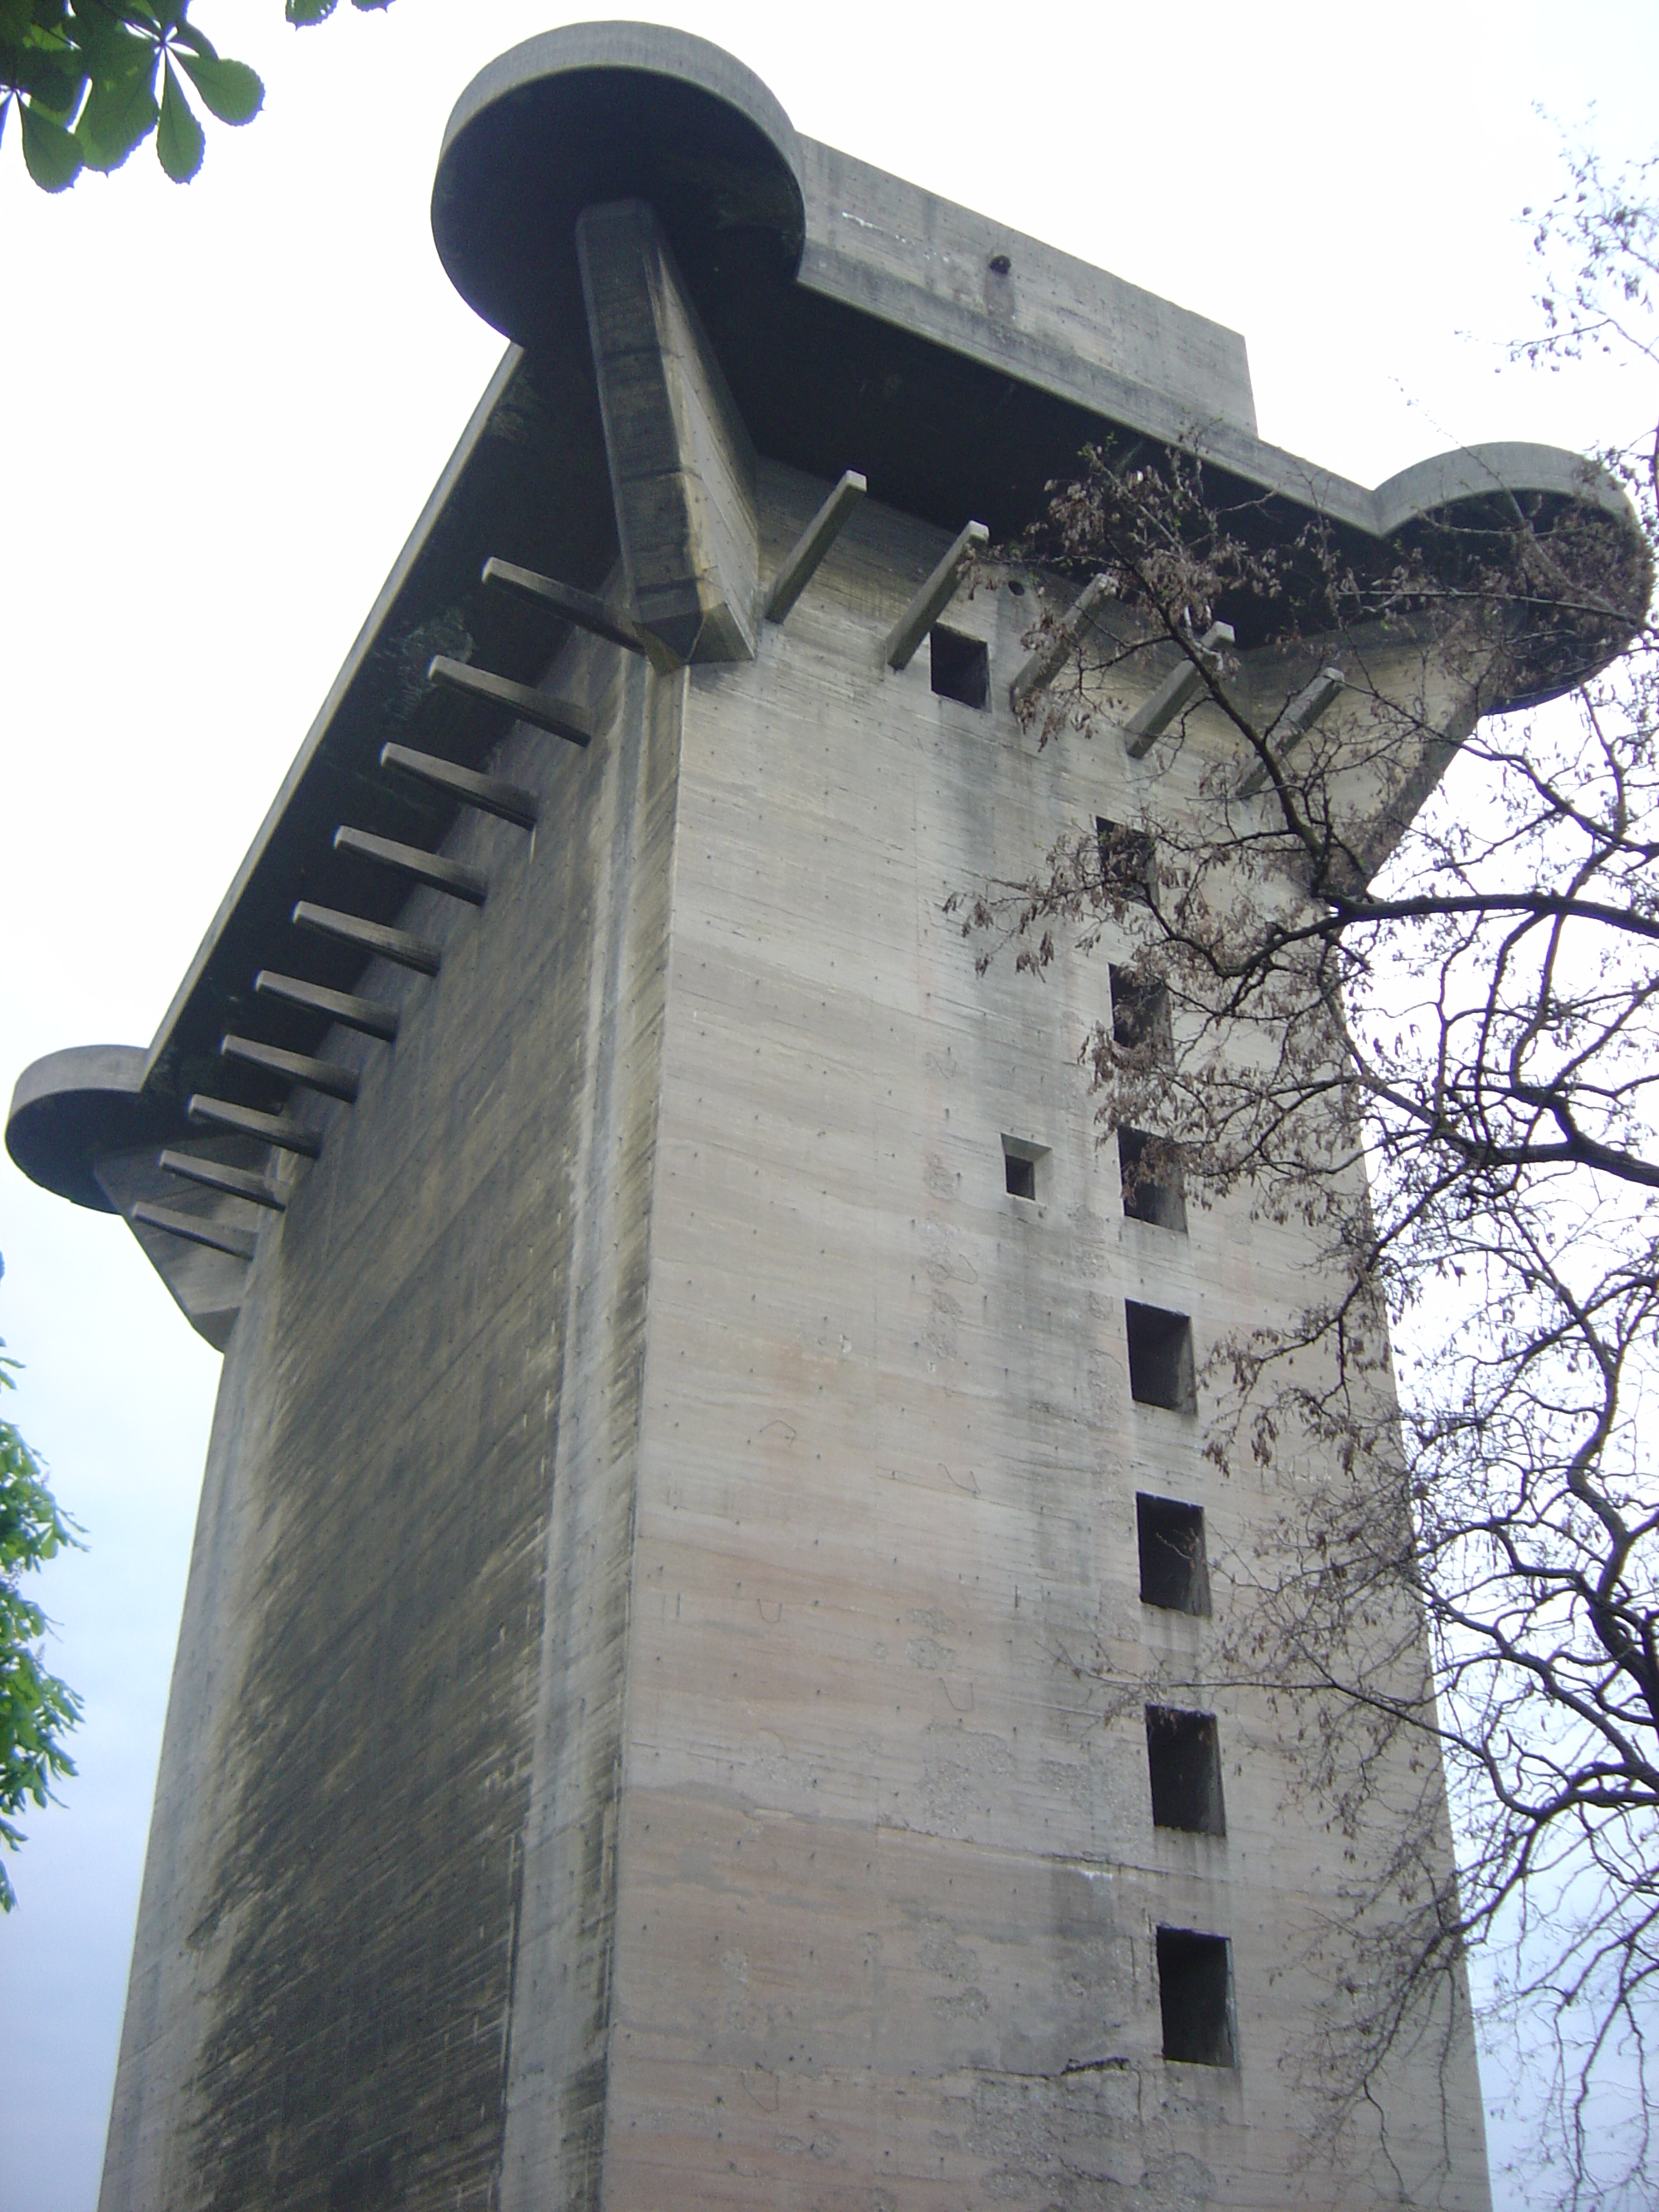 The vienna flak tower 1 944 x 2 592 Design attack berlin